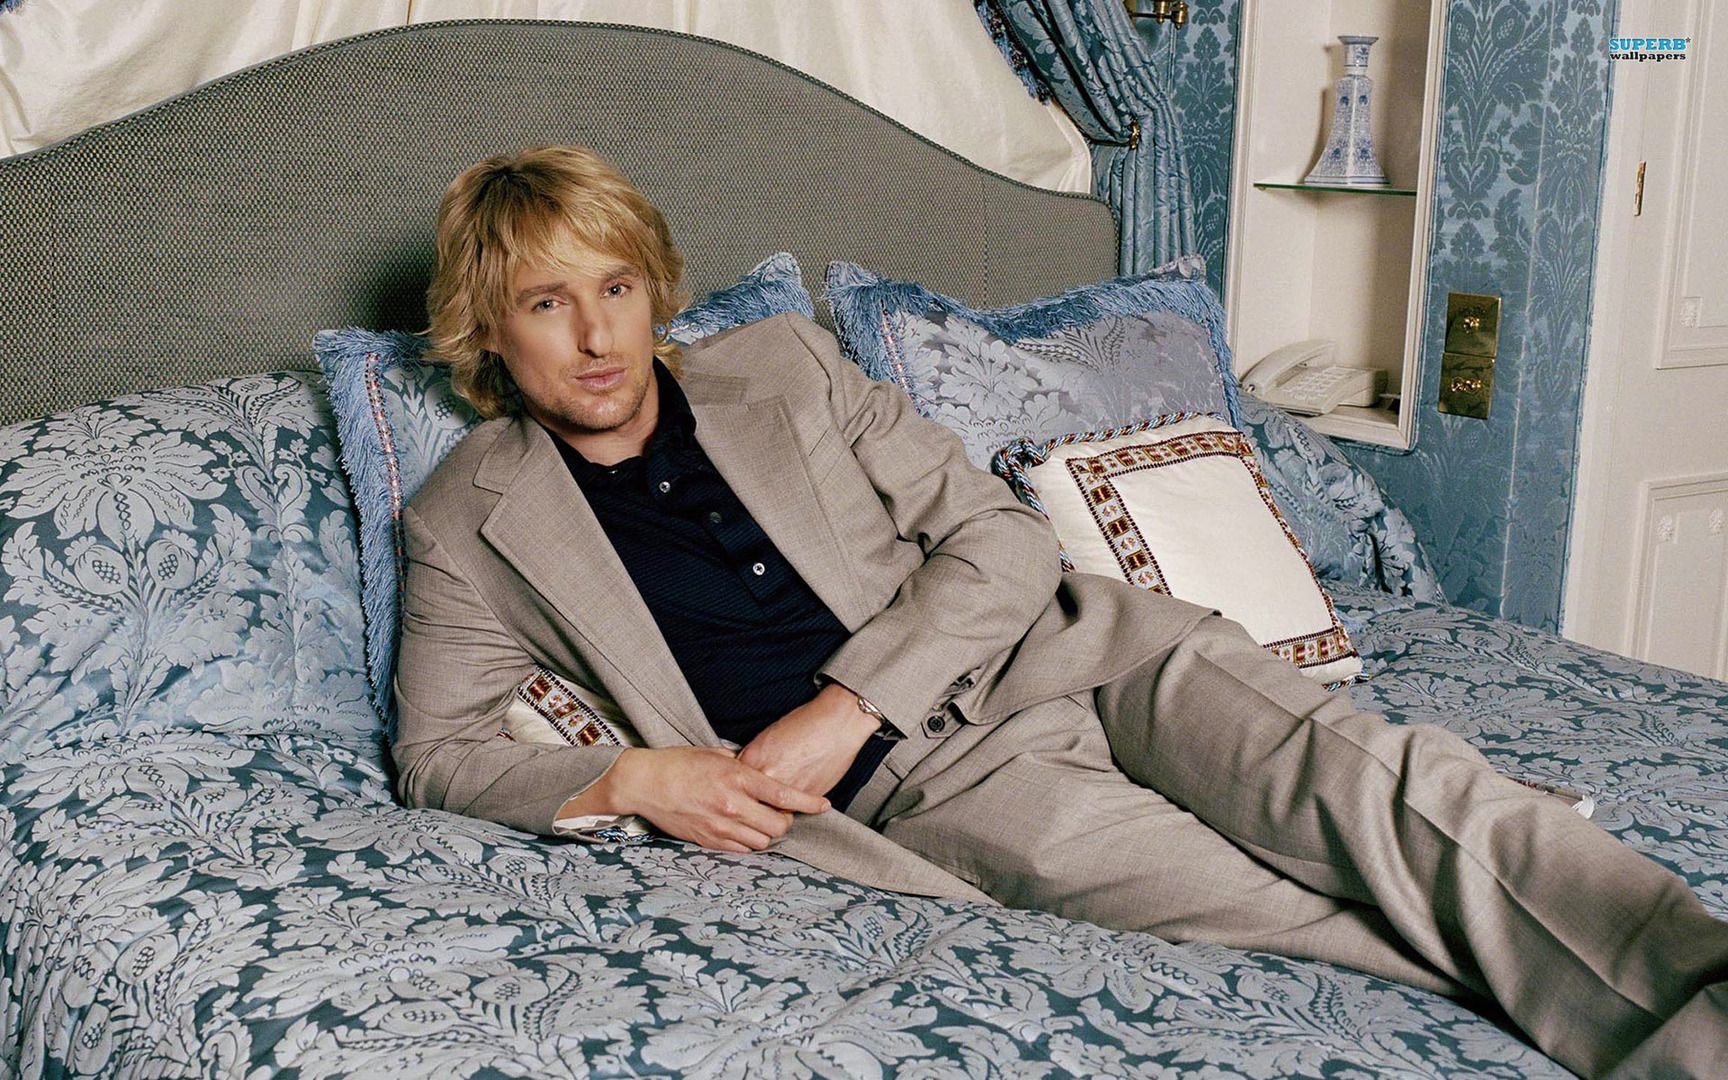 owen wilson Wallpaper HD Wallpaper